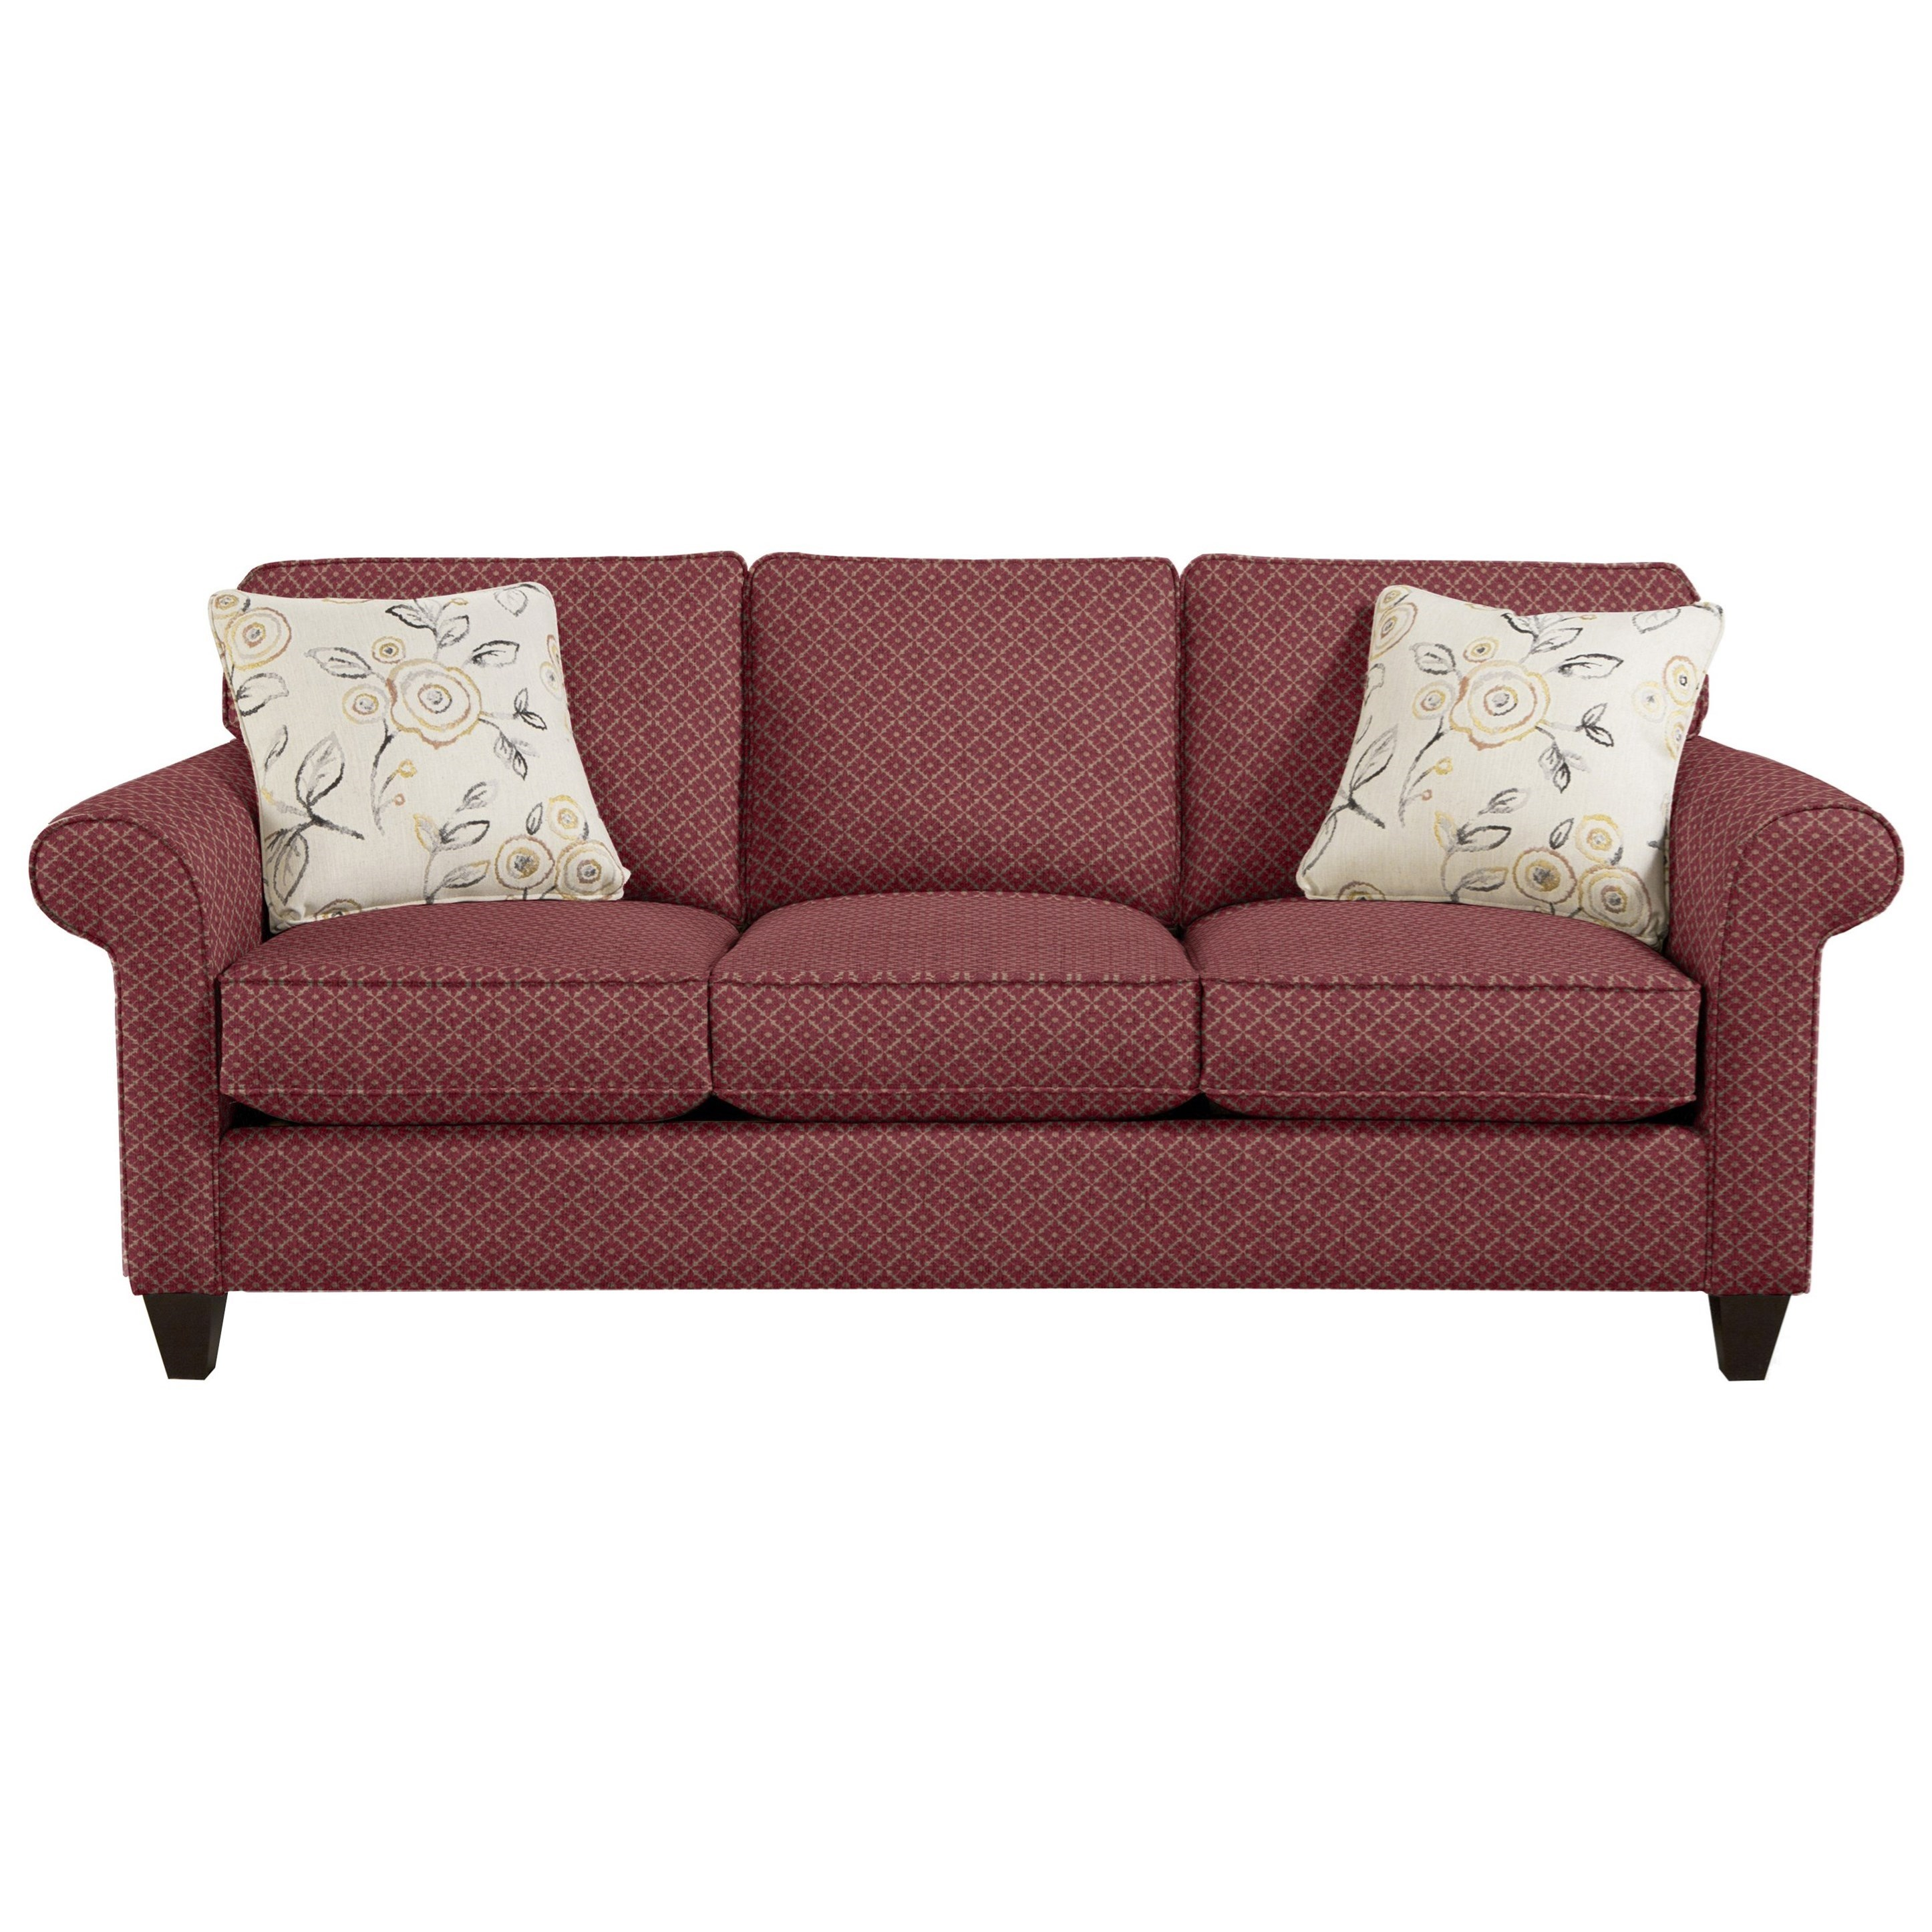 7421 Sofa by Craftmaster at VanDrie Home Furnishings